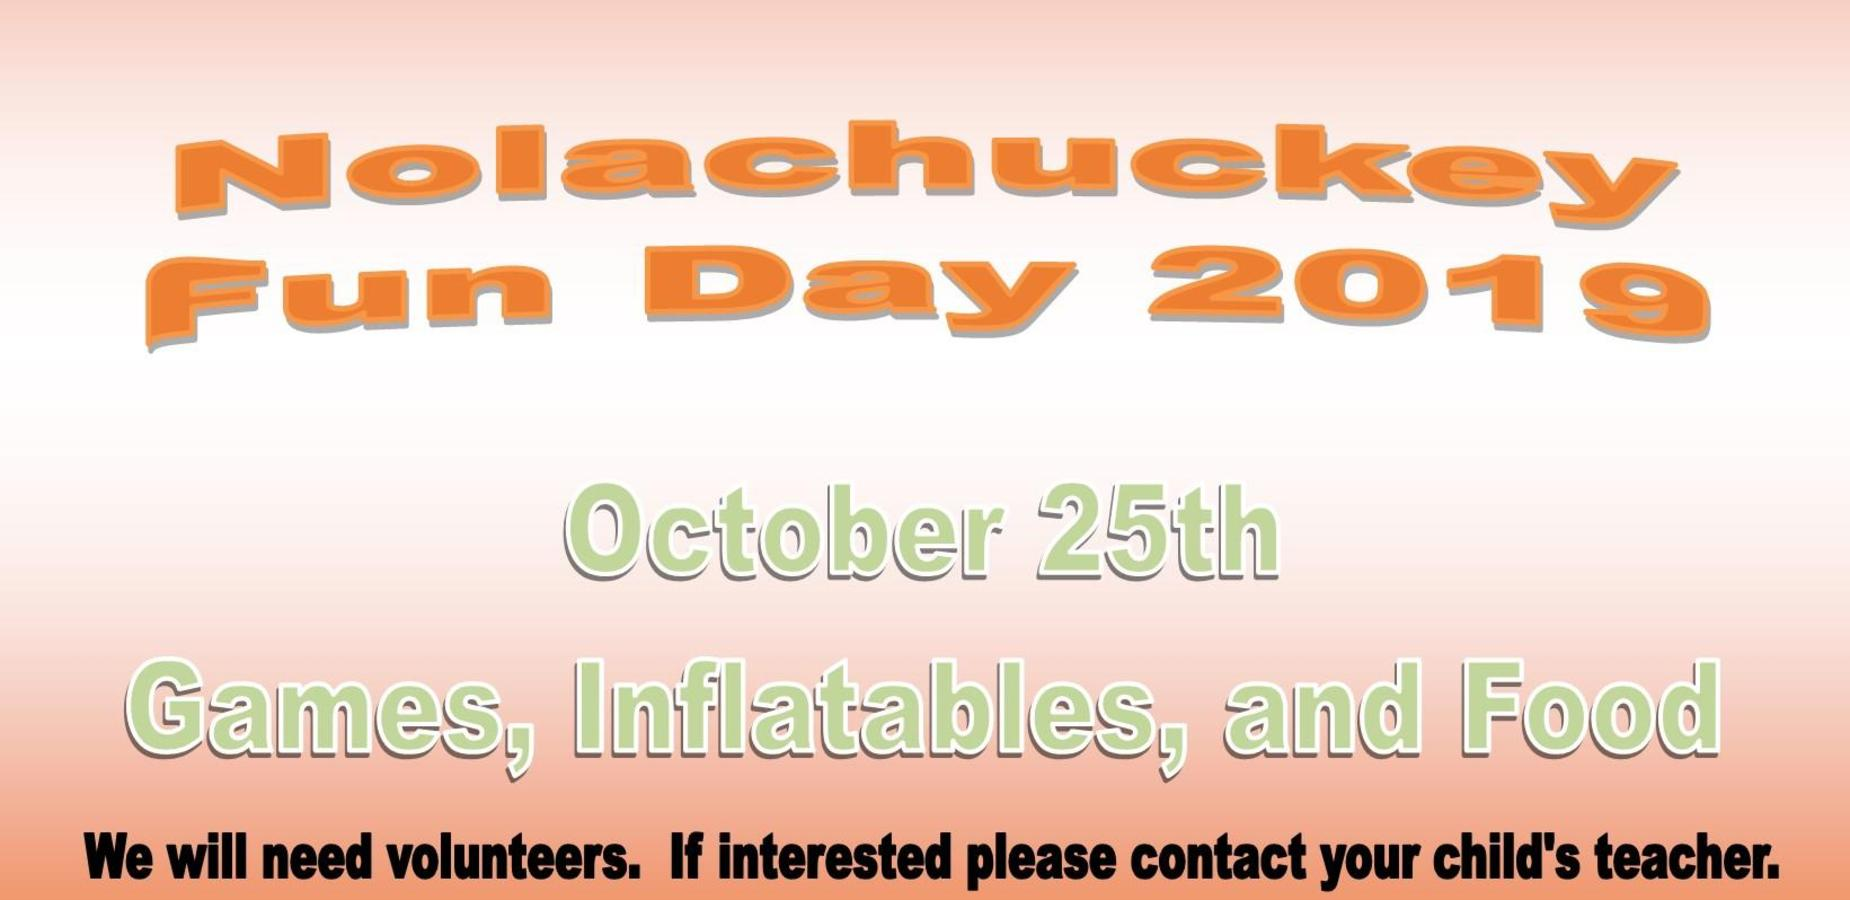 Nolachuckey Fun Day 2019 October 25th Games, inflatables, and food.  We will need volunteers. If interested, contact your child's teacher.